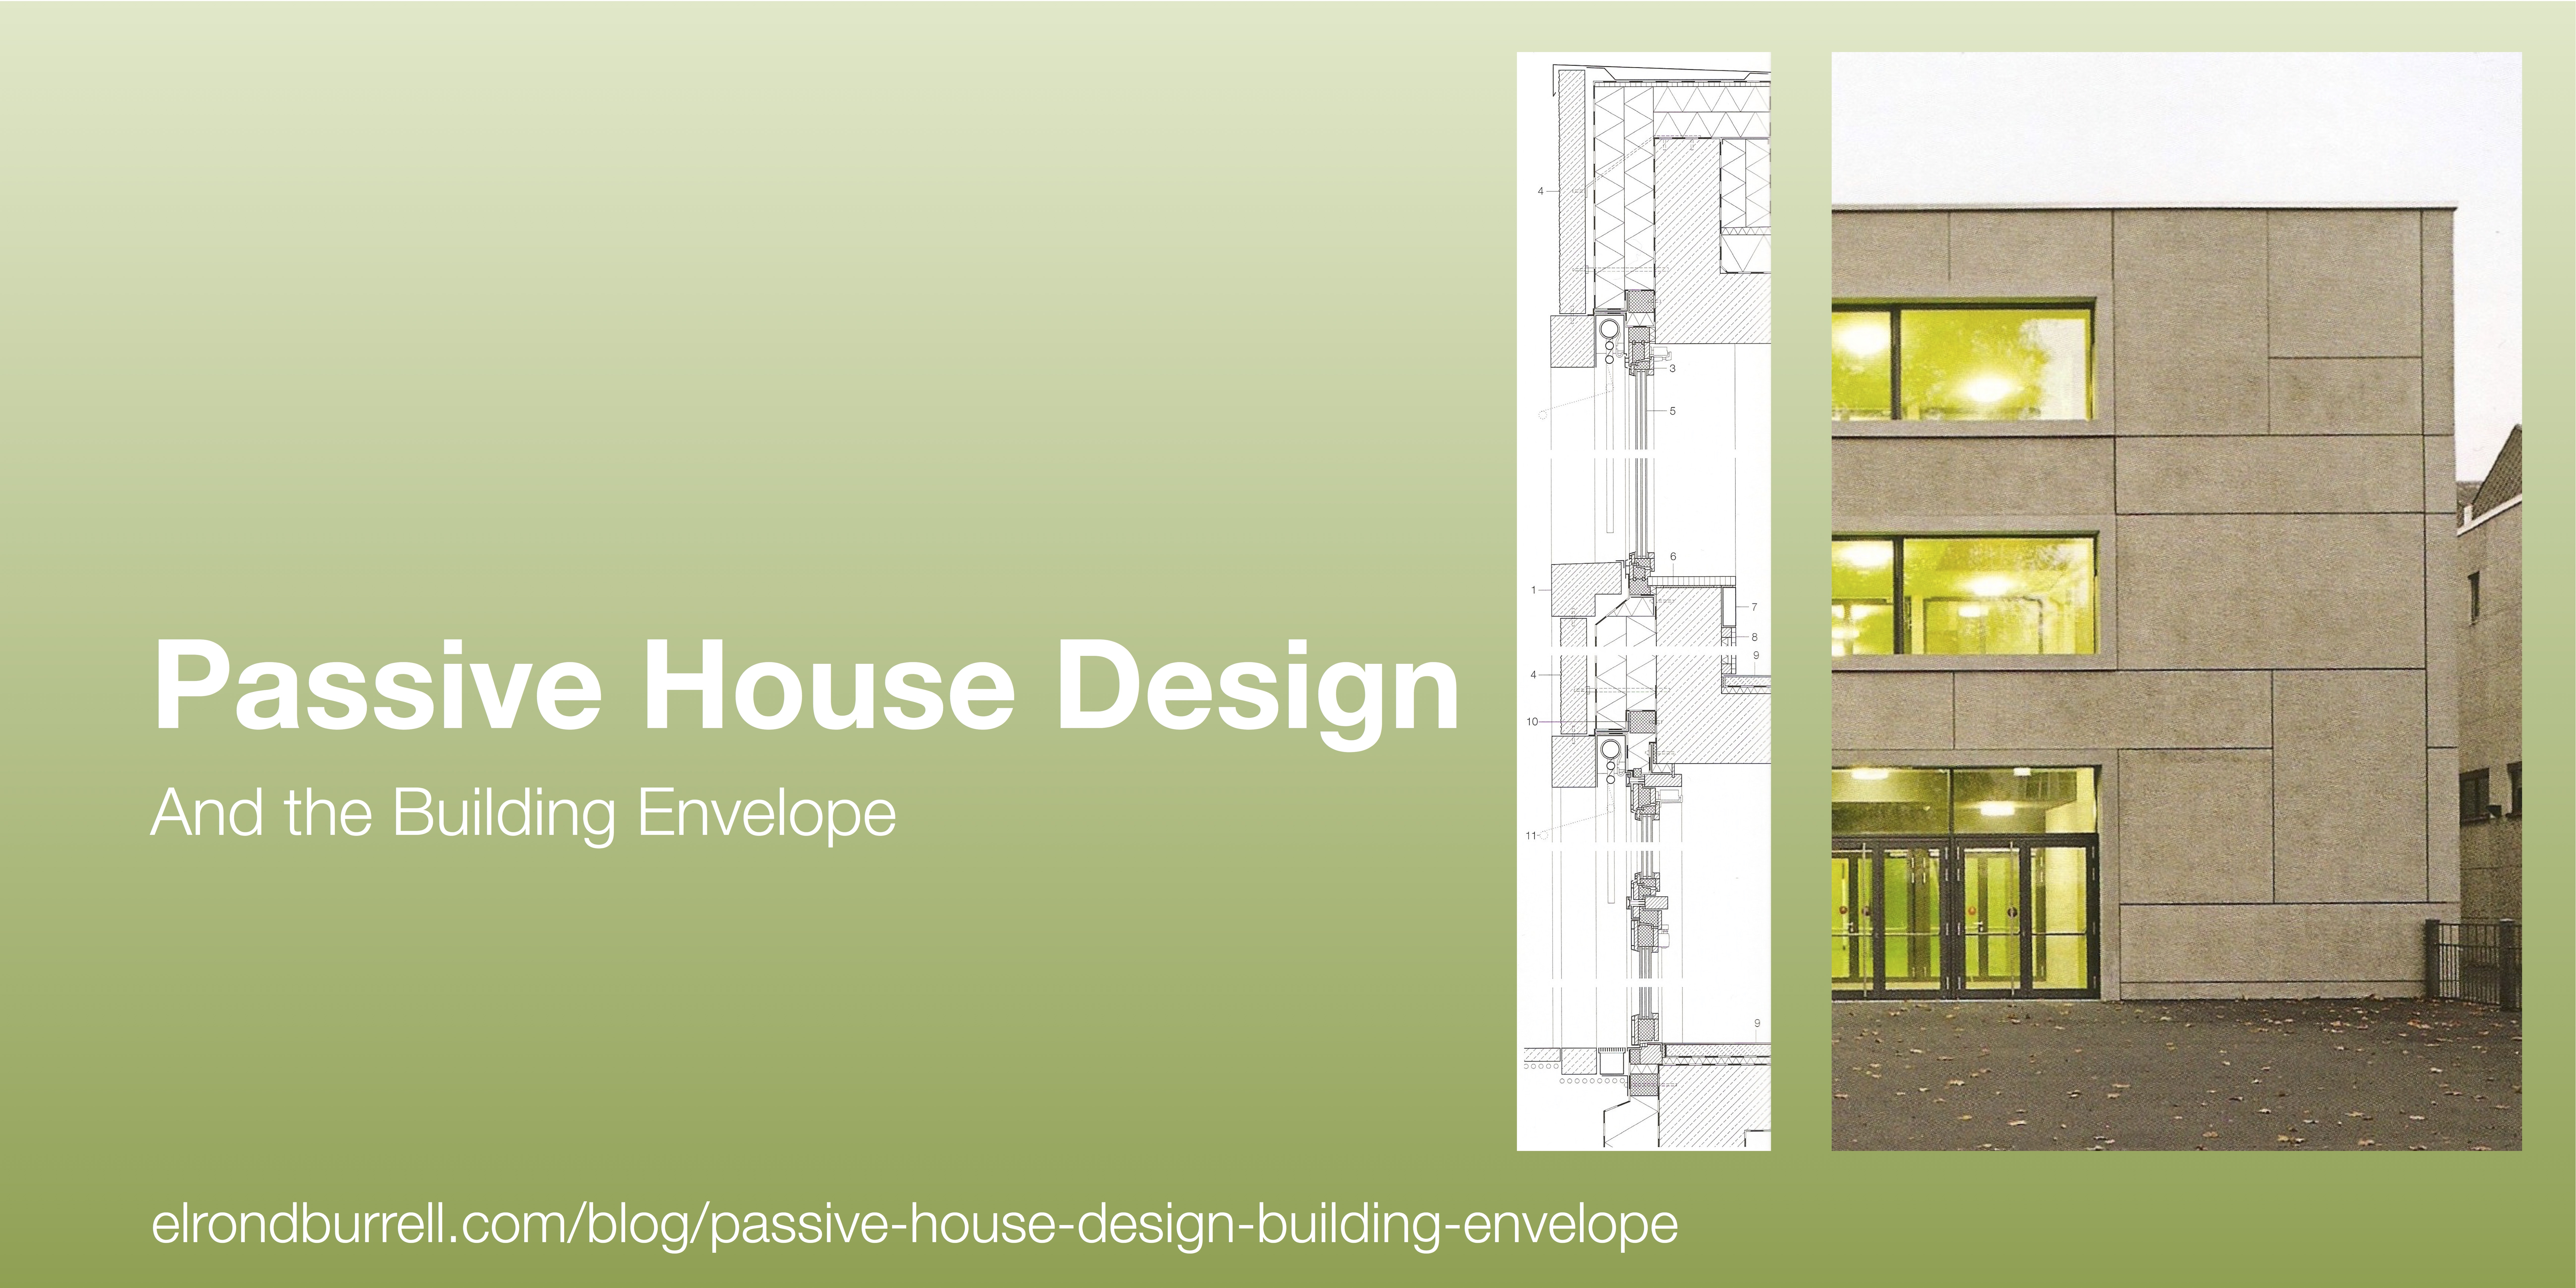 023 passive house design building envelope heavy - Thermal Envelope House Plans